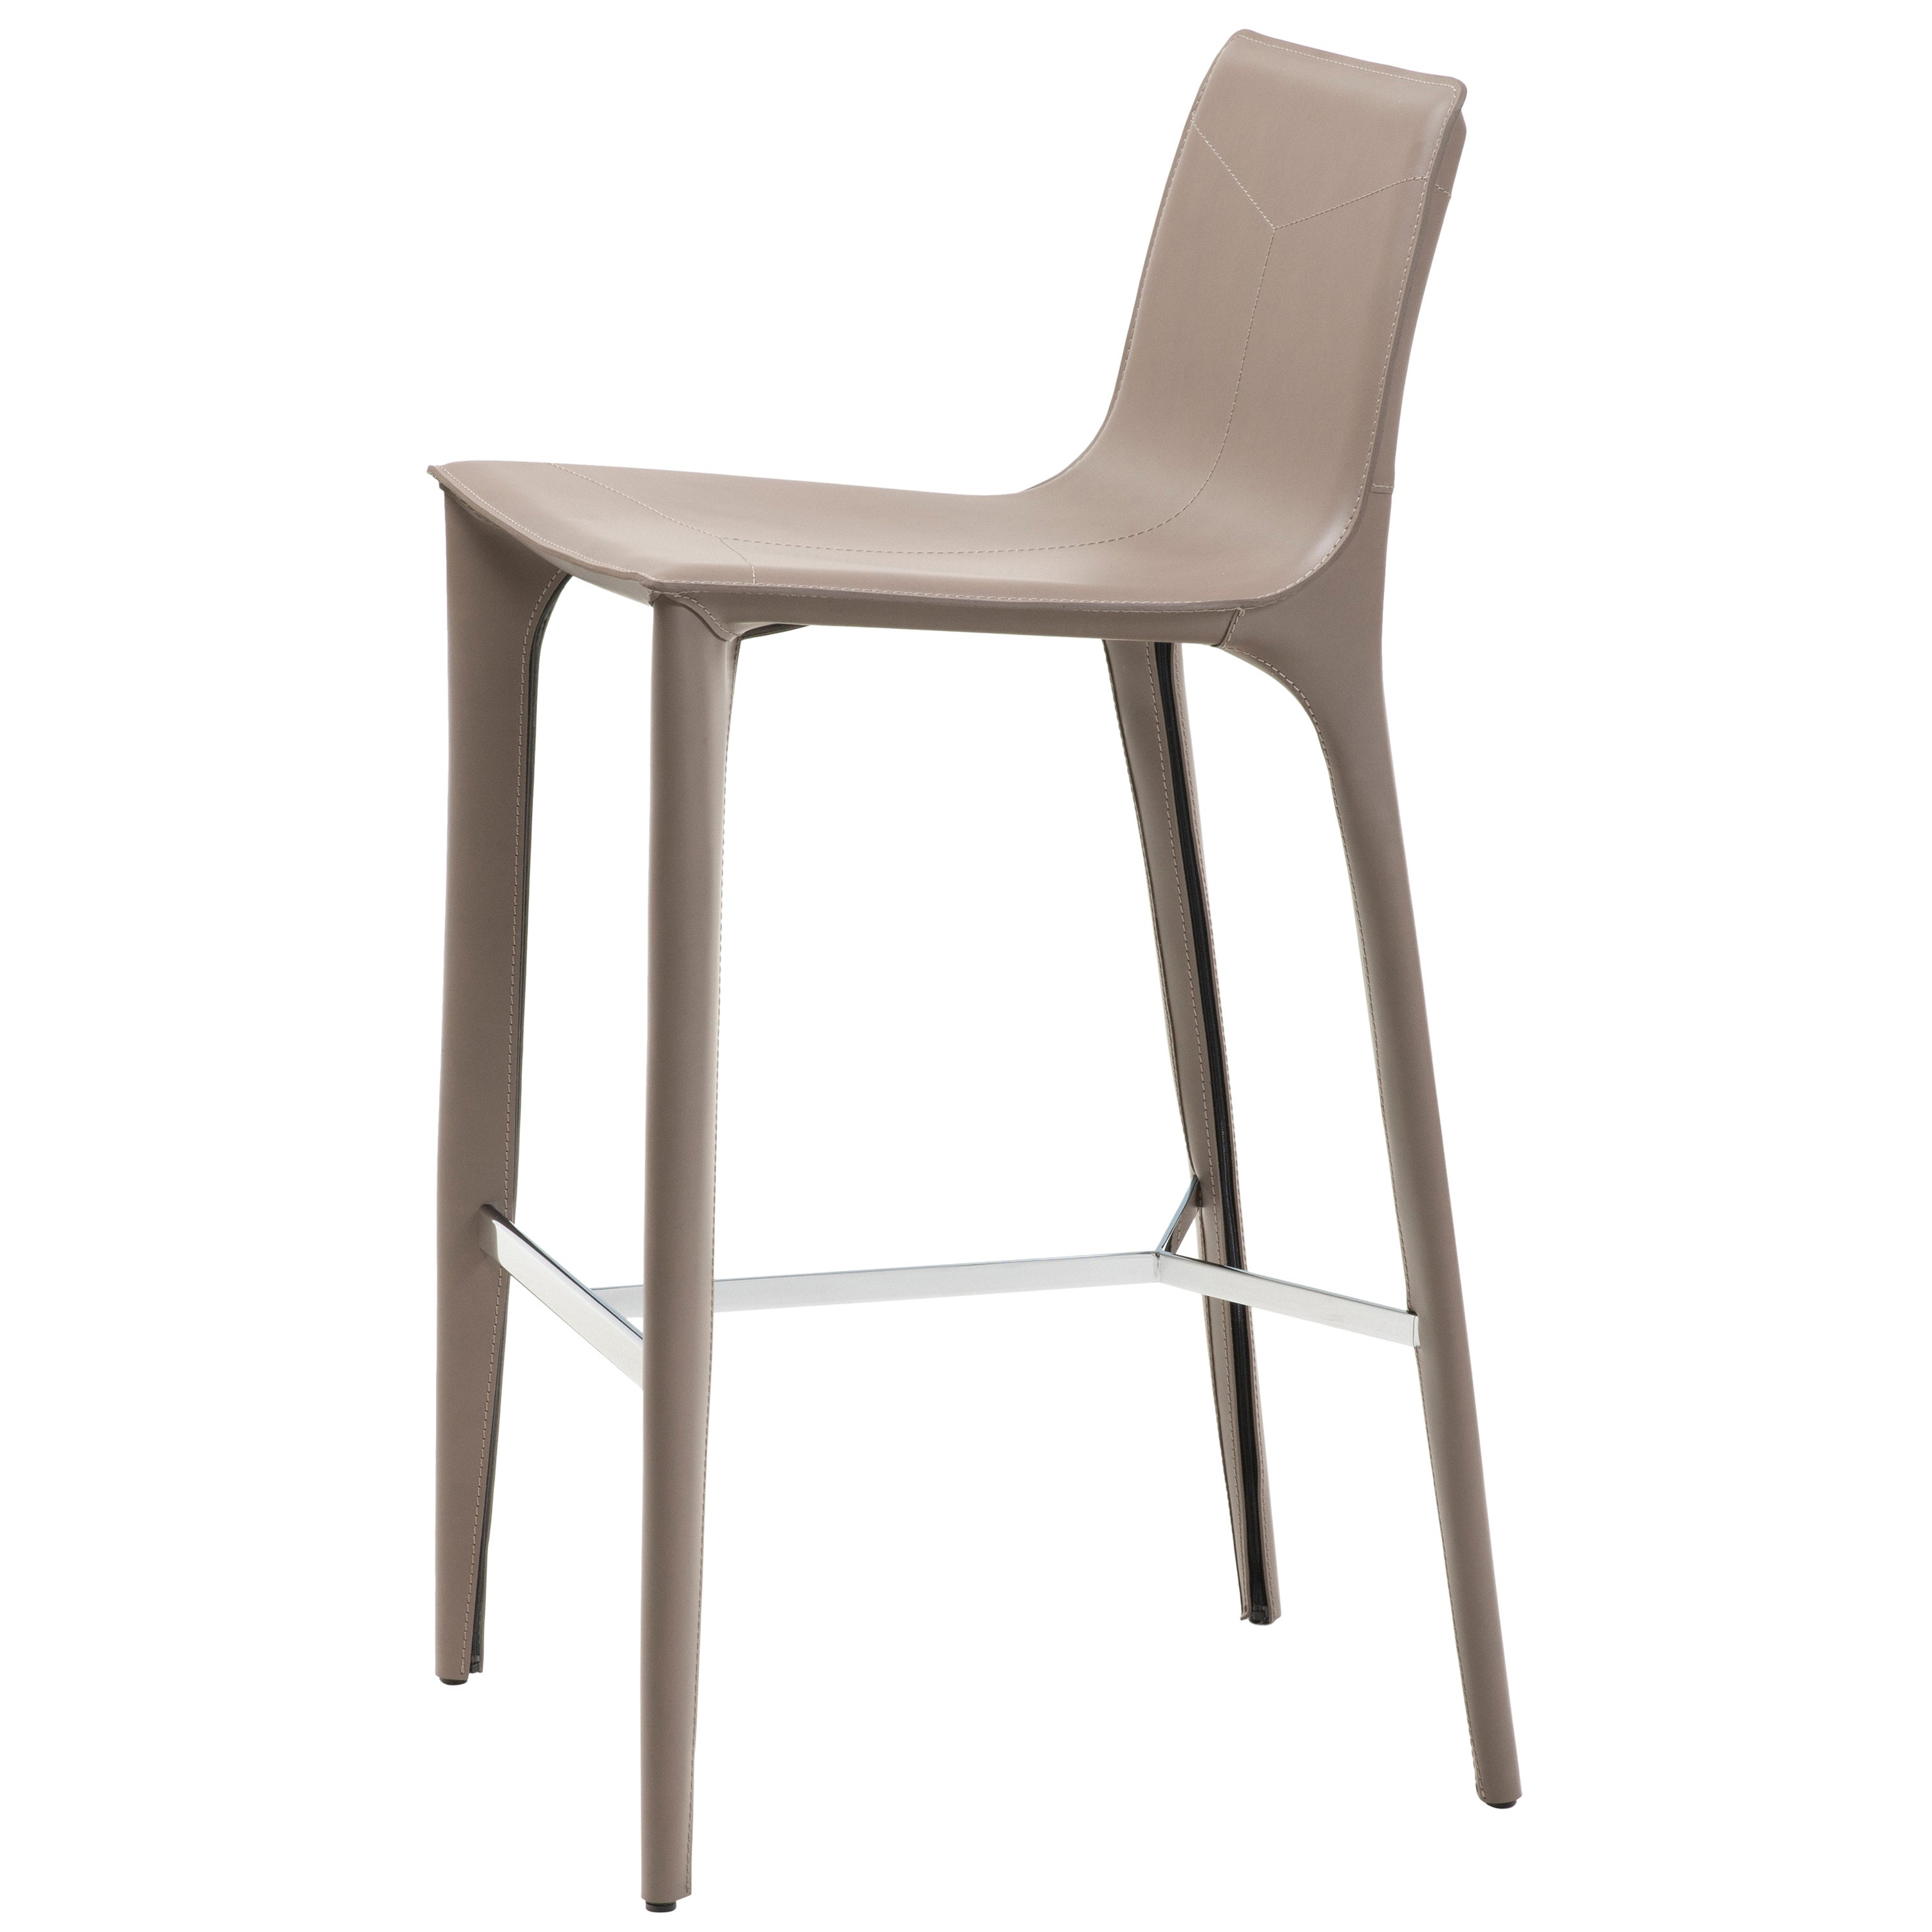 HOLLY HUNT Adriatic Bar Stool in Polished Chrome and Pine Bark Leather Finish